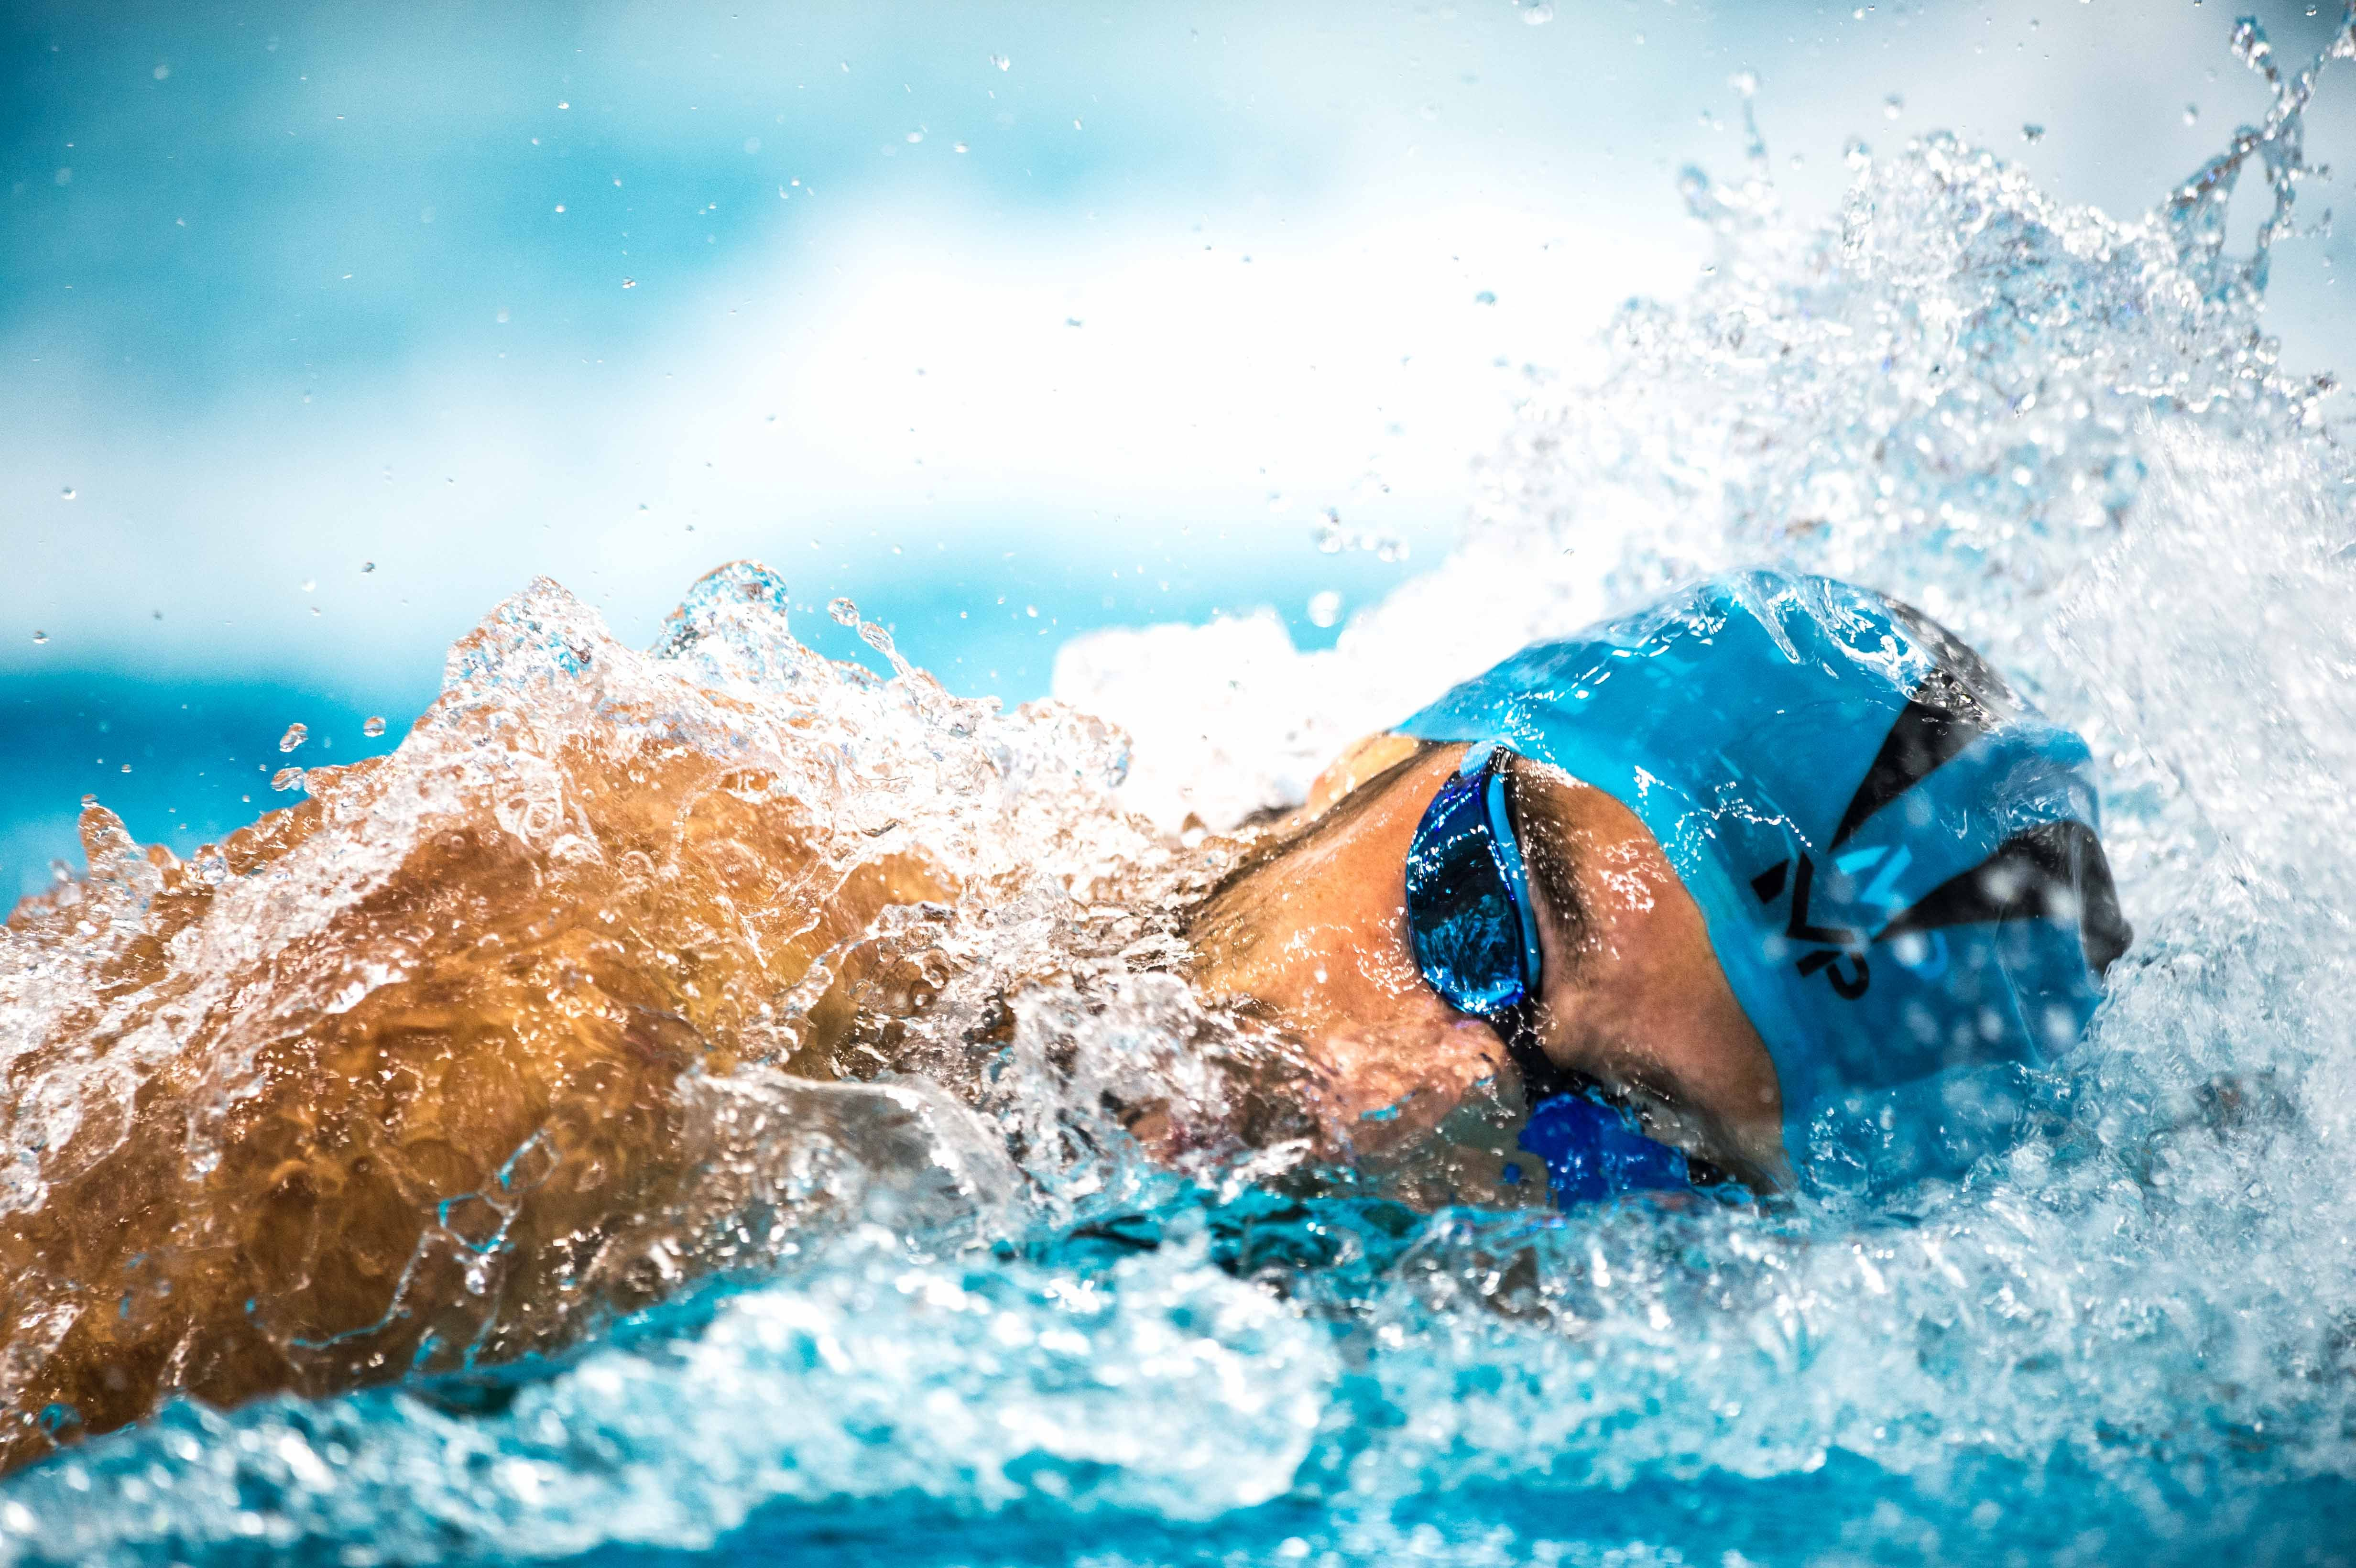 Race Video Michael Phelps Goes 1 34 04 In Exhibition 200 Yard Free Michael Phelps Freestyle Swimming Swimming